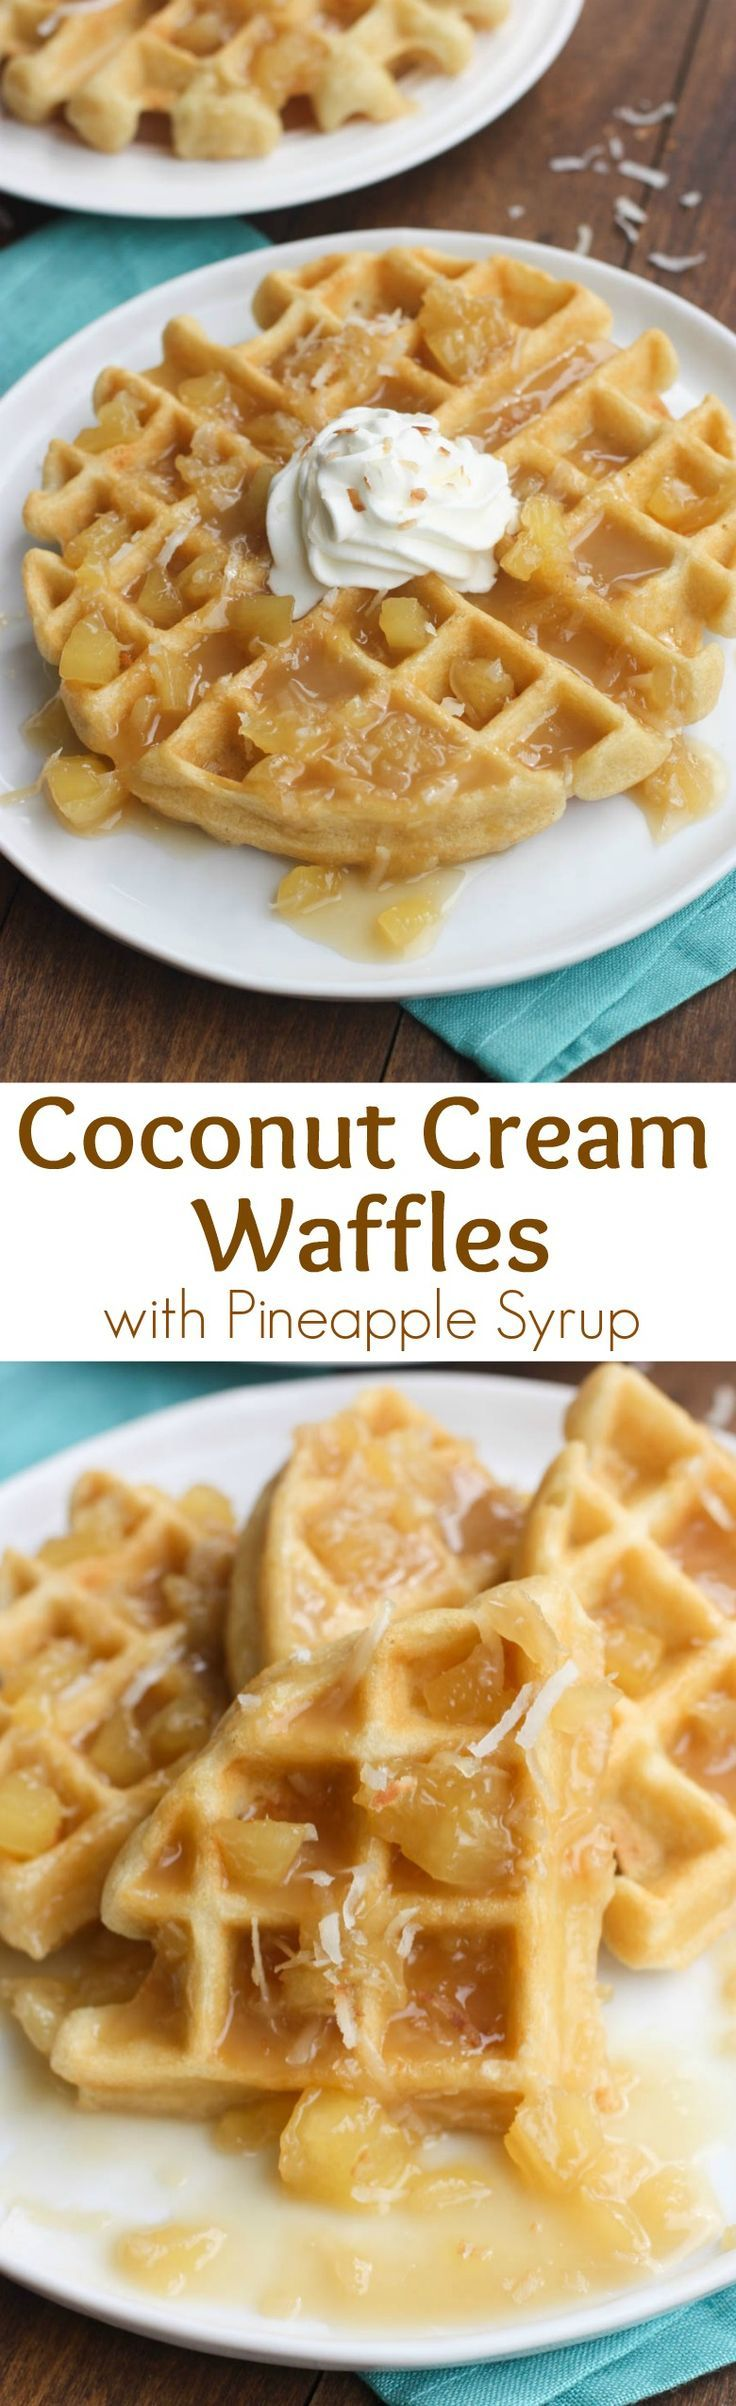 Coconut Cream Waffles with Pineapple Syrup | Tastes Better From Scratch (Breakfast Recipes Waffles)